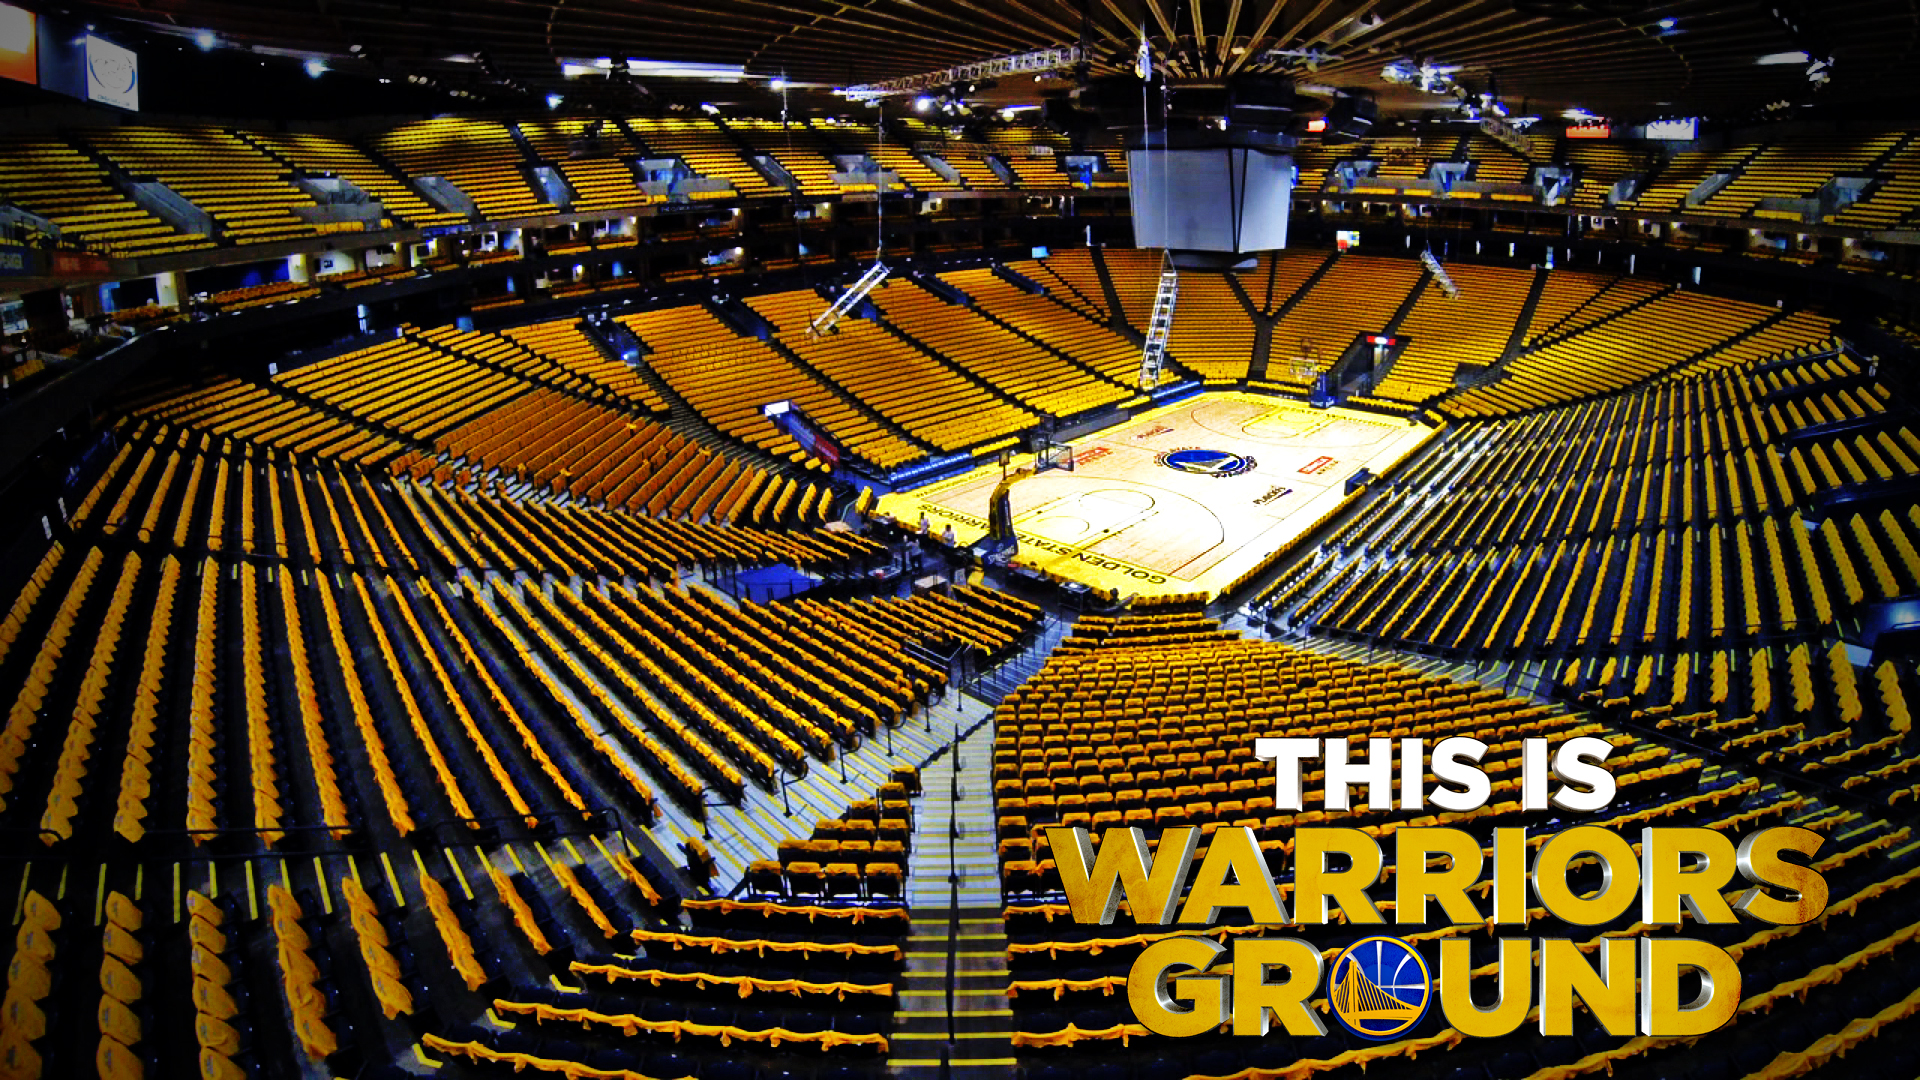 Golden State Warriors Backgrounds